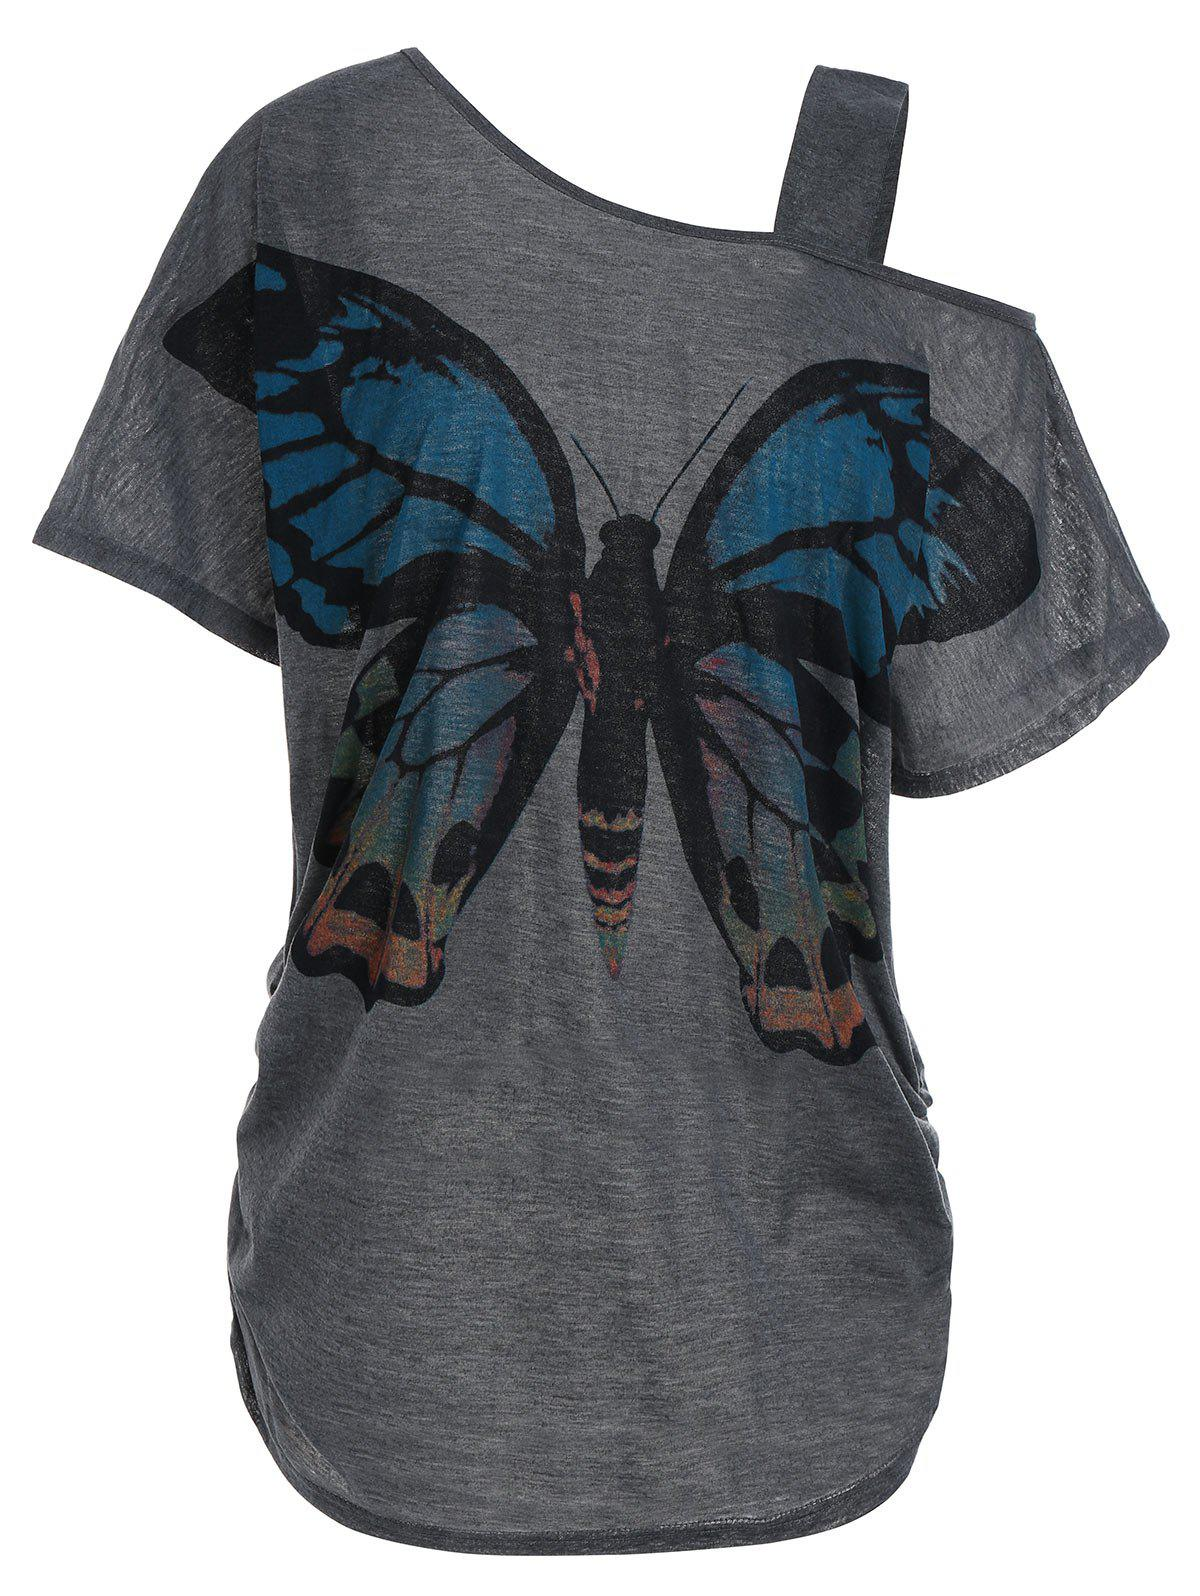 Butterfly Print Skew Collar Plus Size Tunic Top dragonfly print skew collar plus size tee